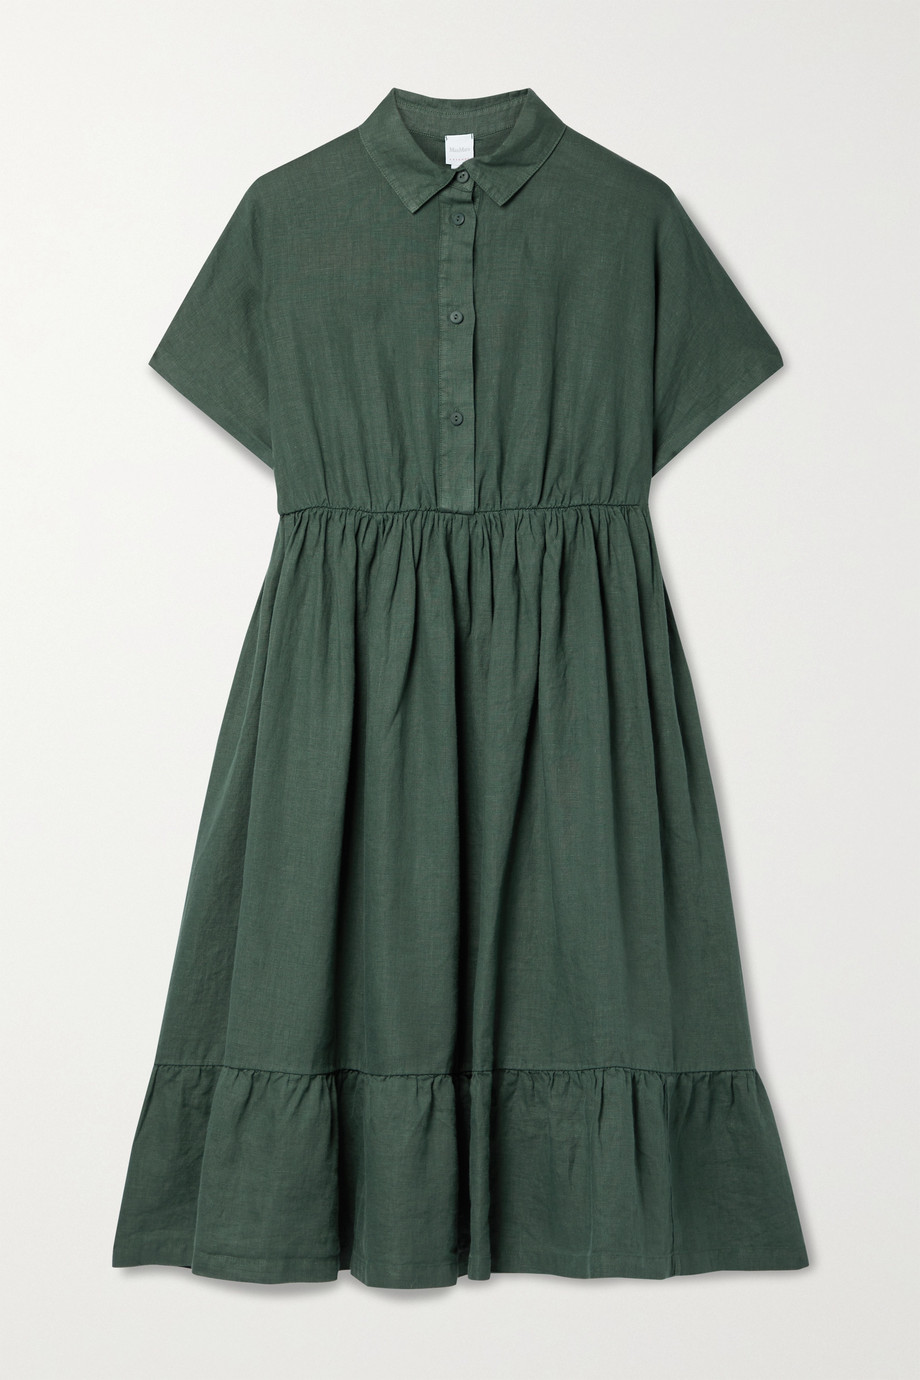 Max Mara + Leisure Dolmen gathered linen dress